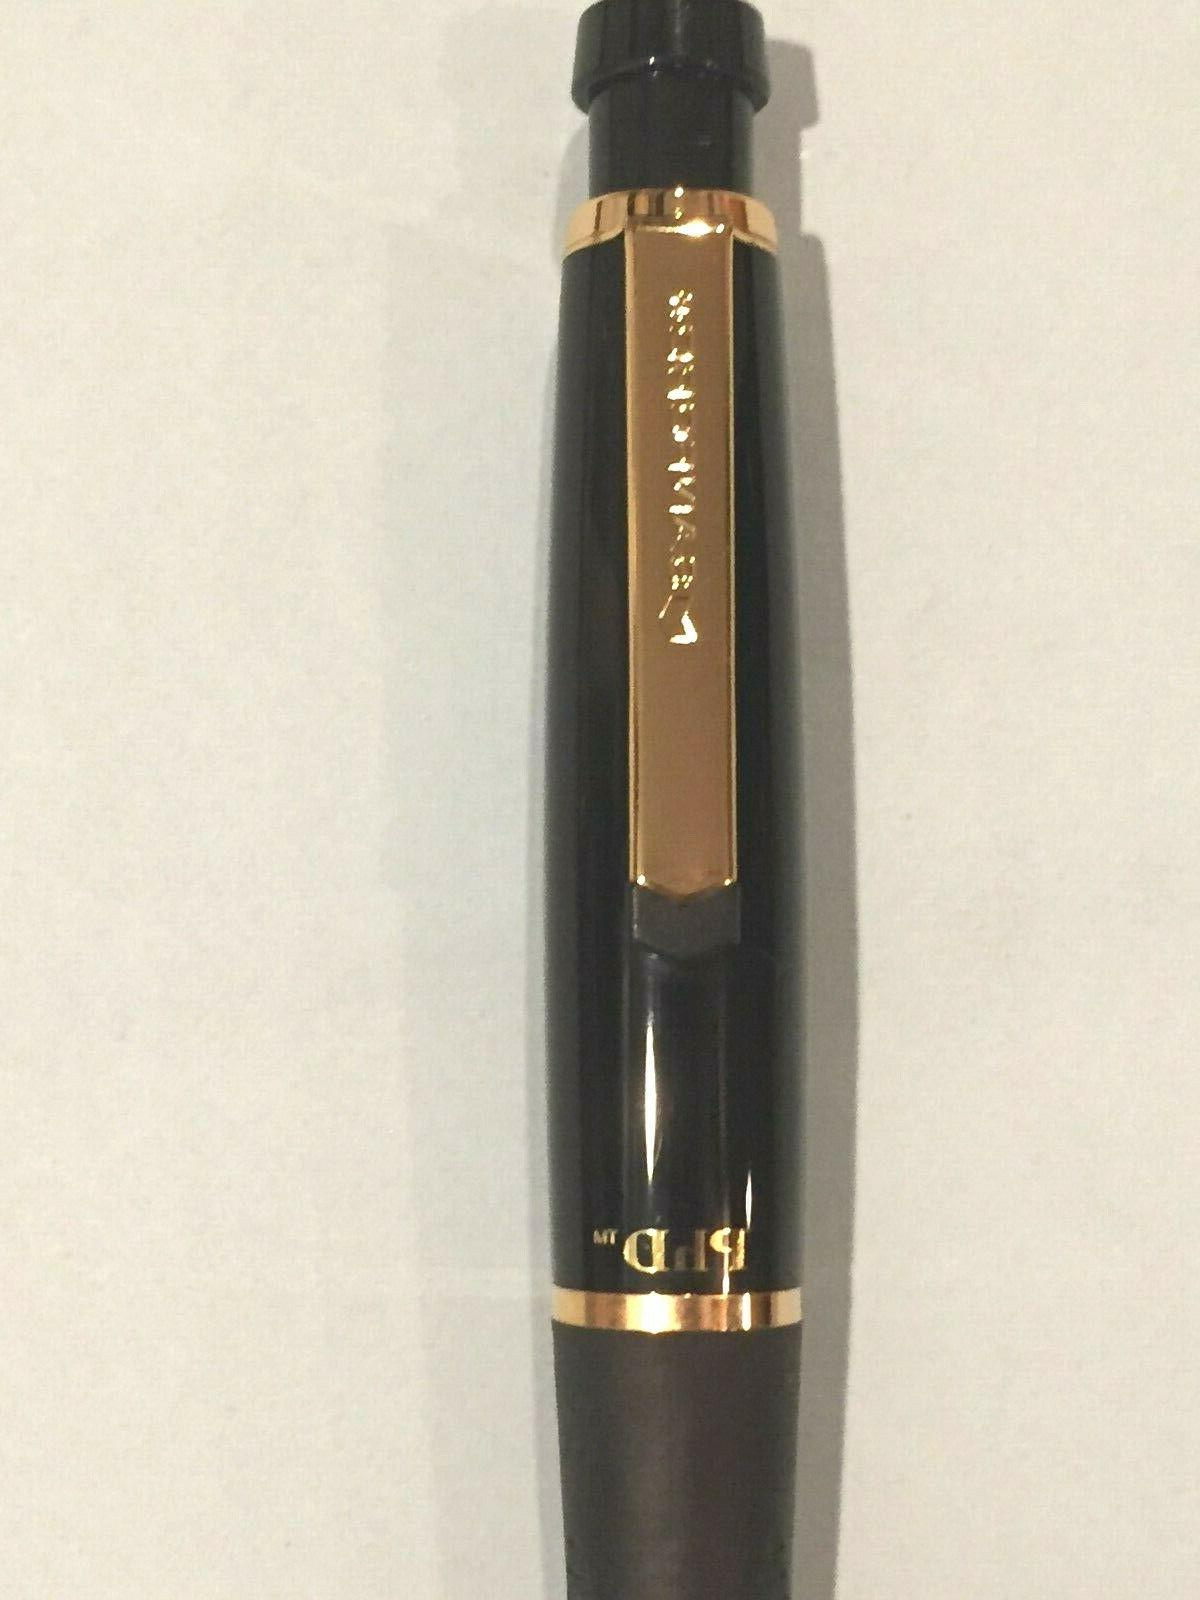 phd gel pen new black and gold